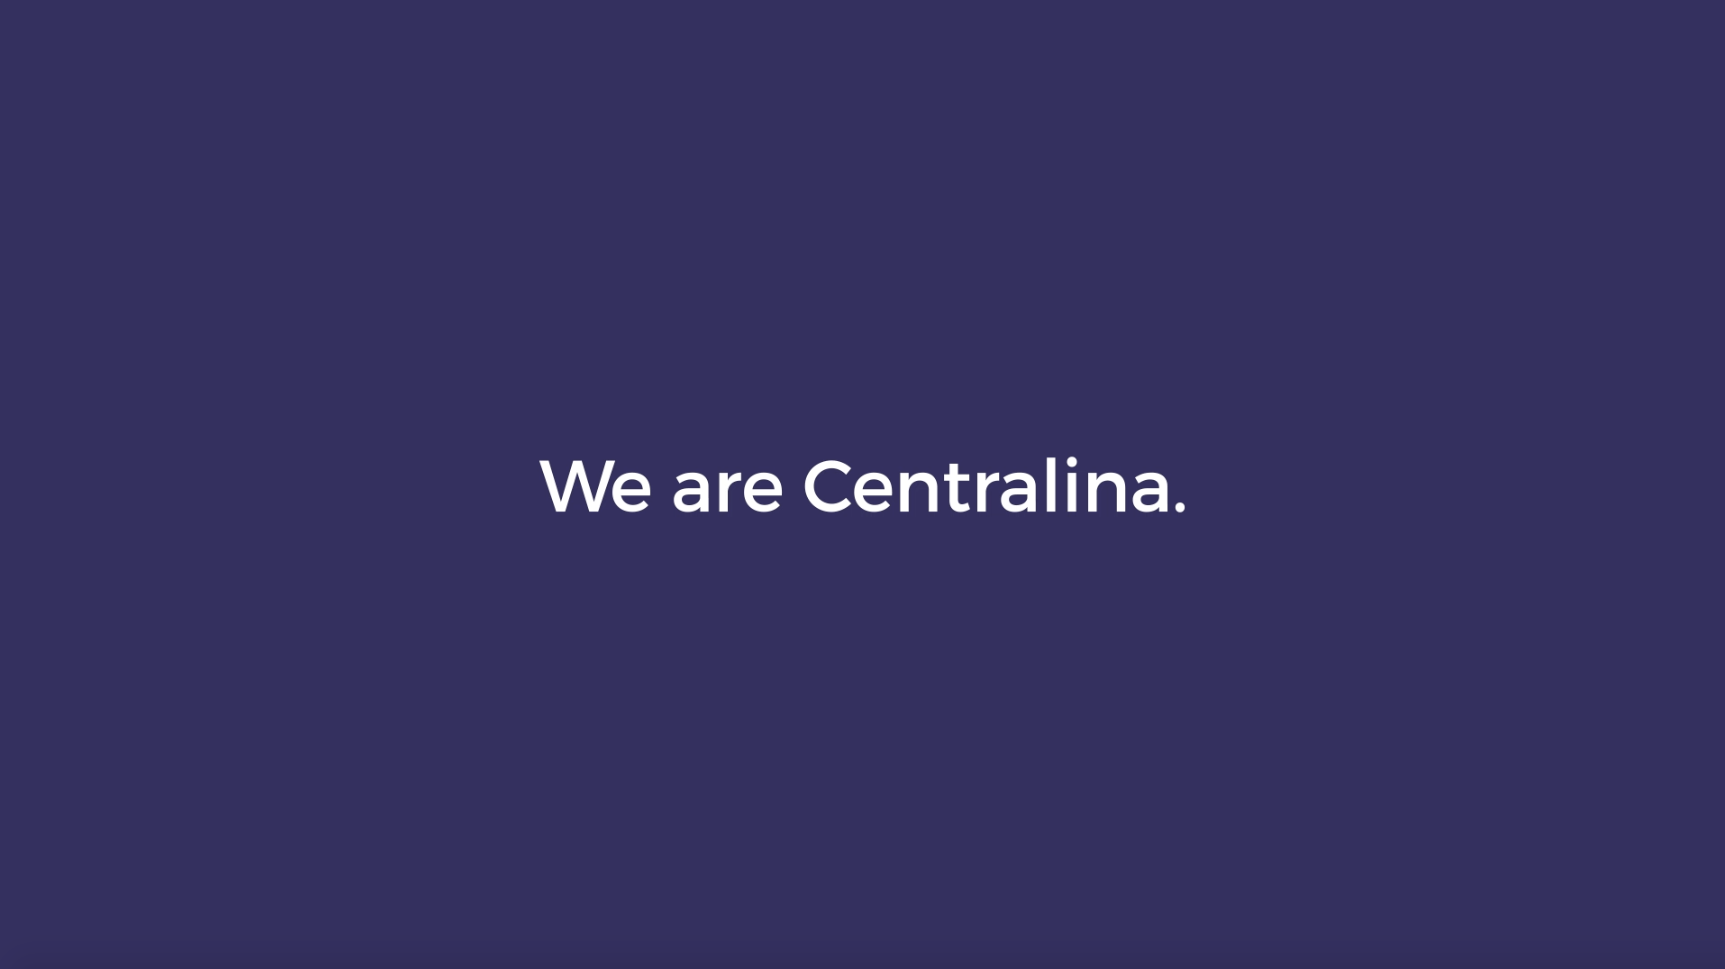 We are Centralina.